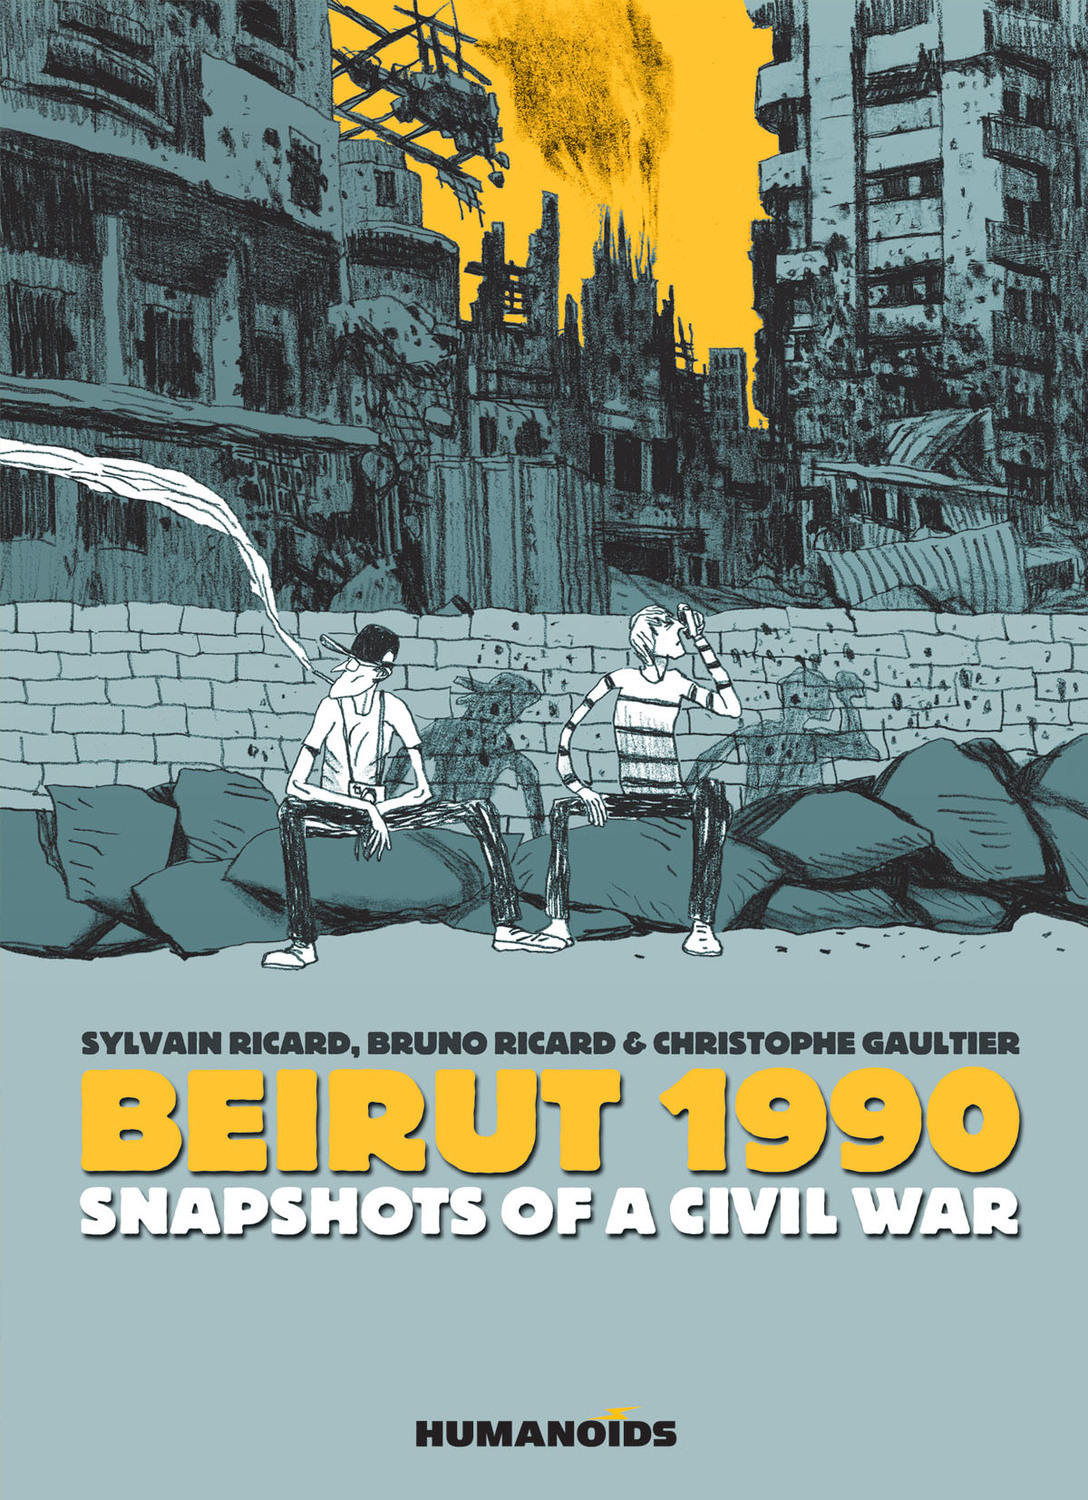 Beirut 1990: Snapshots of a Civil War - Hardcover Trade